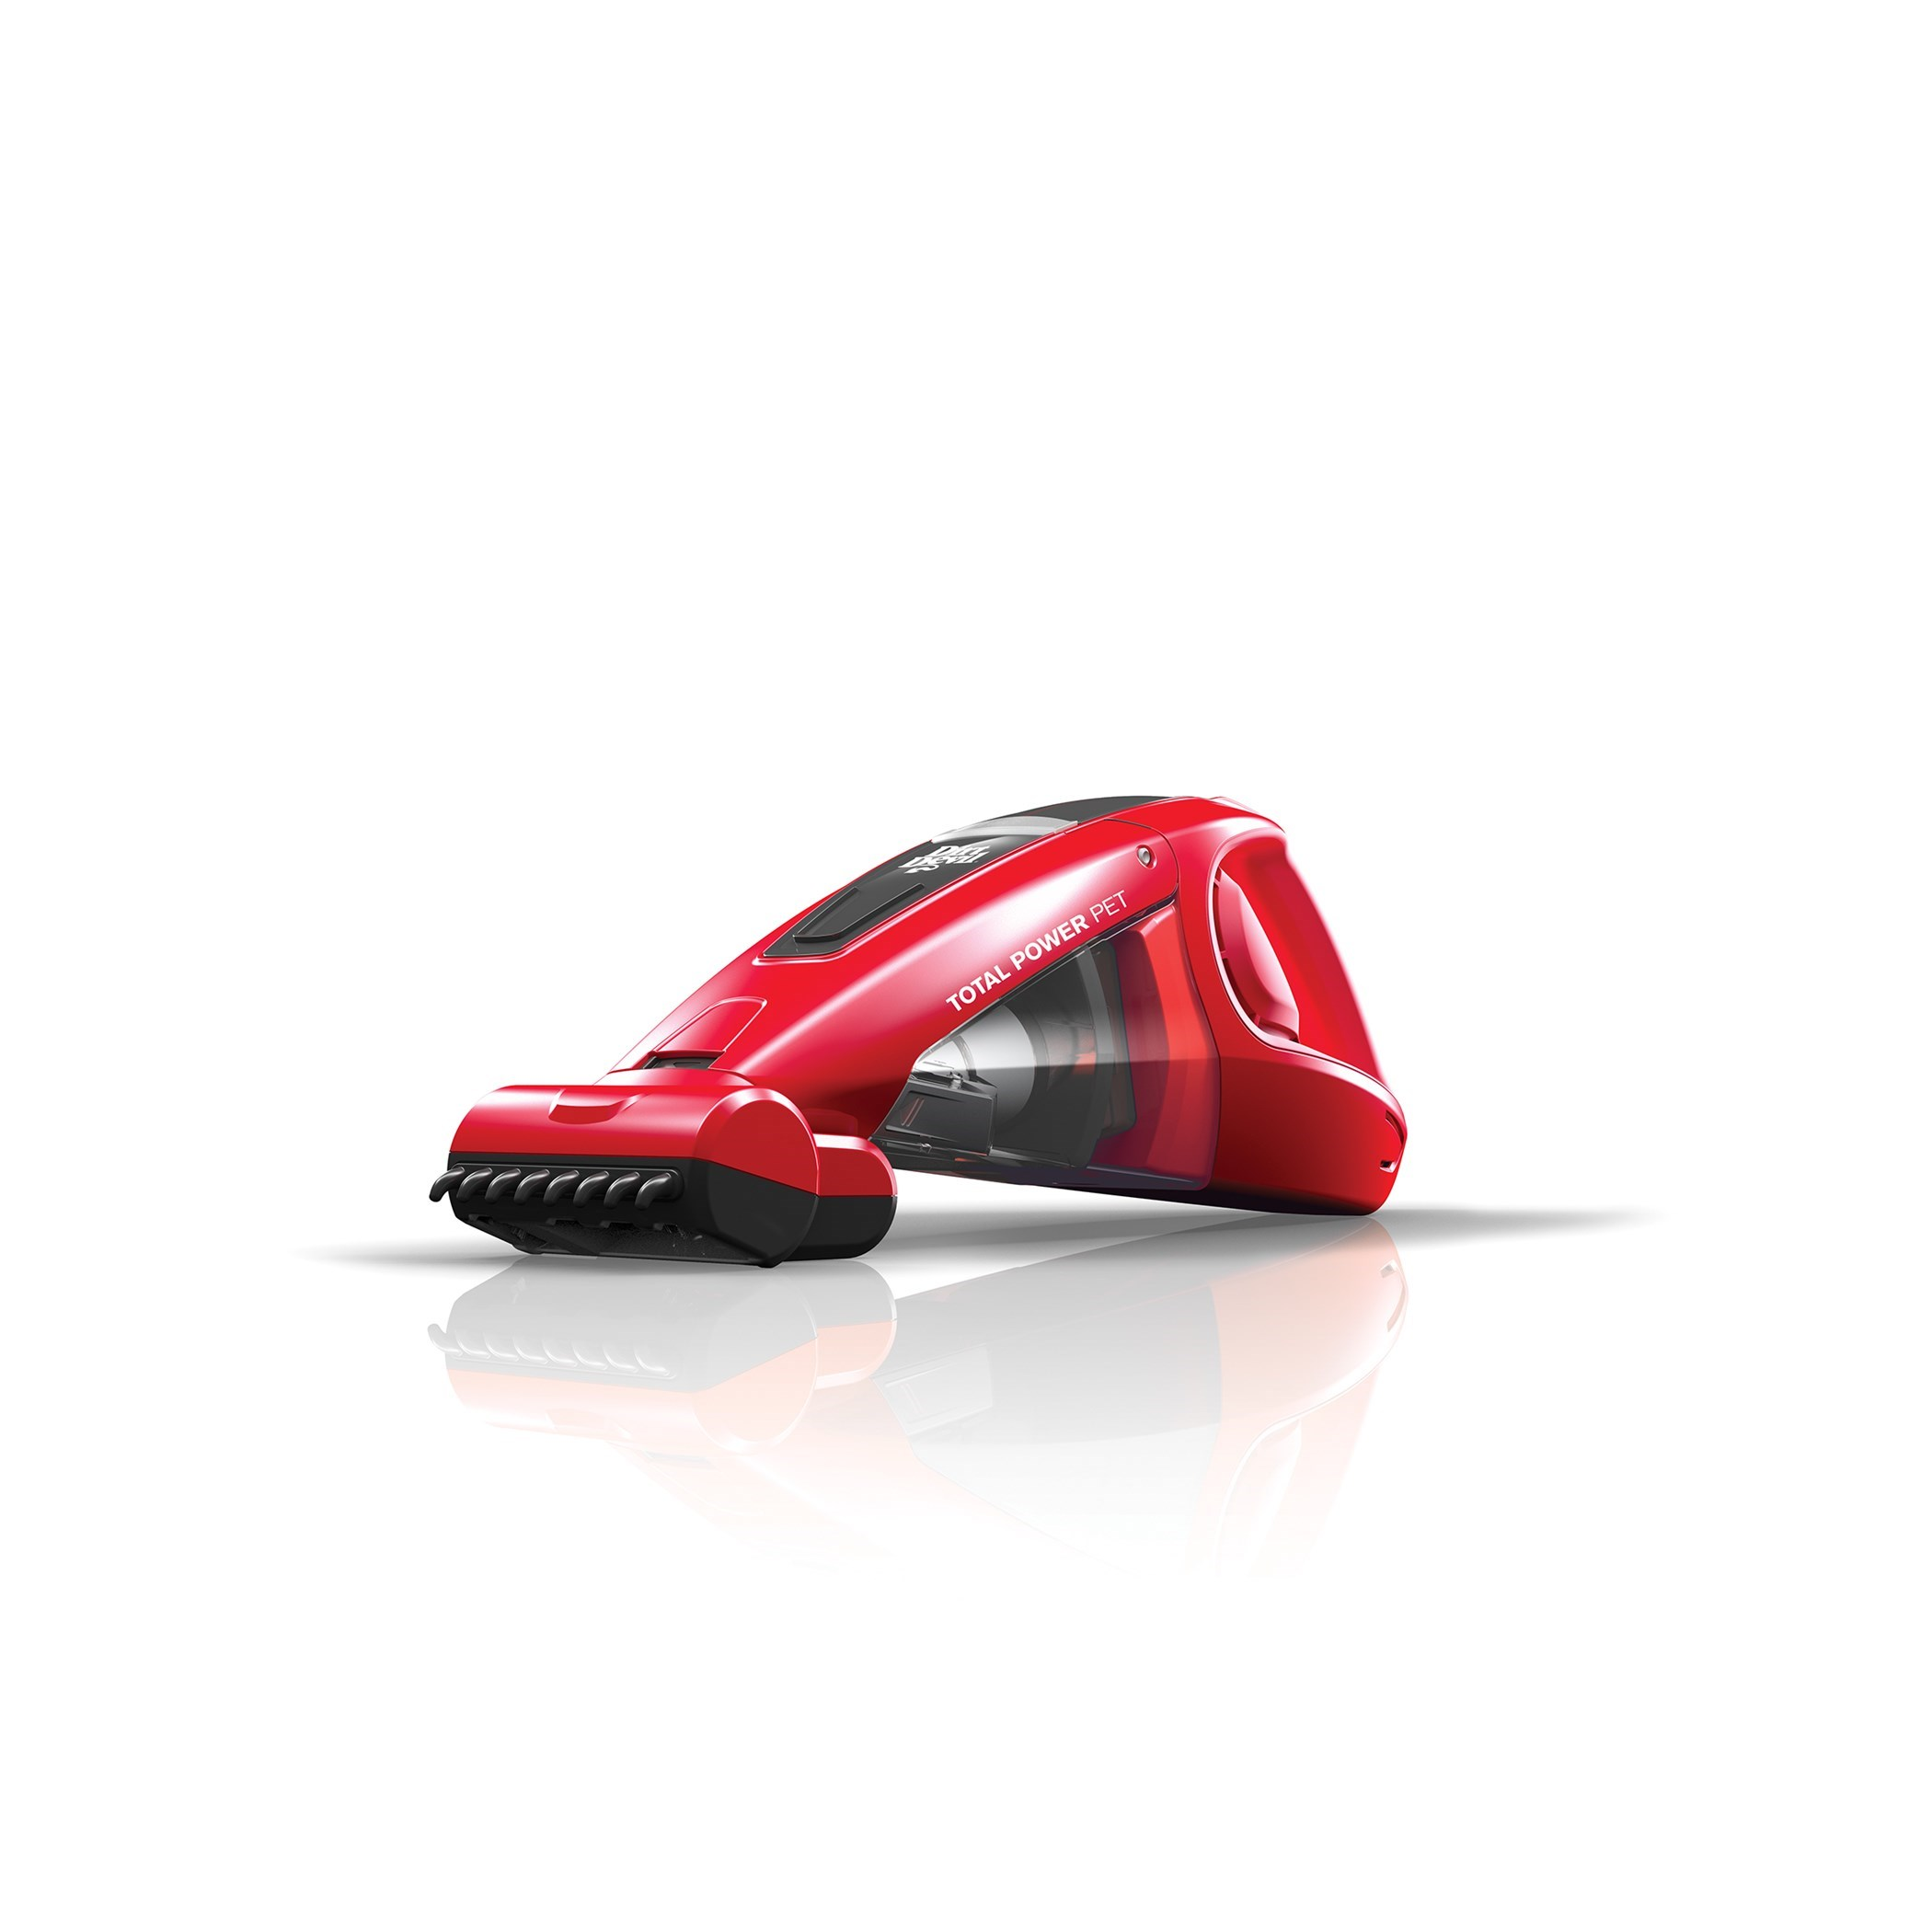 Total Power Pet Bagless Handheld Vacuum